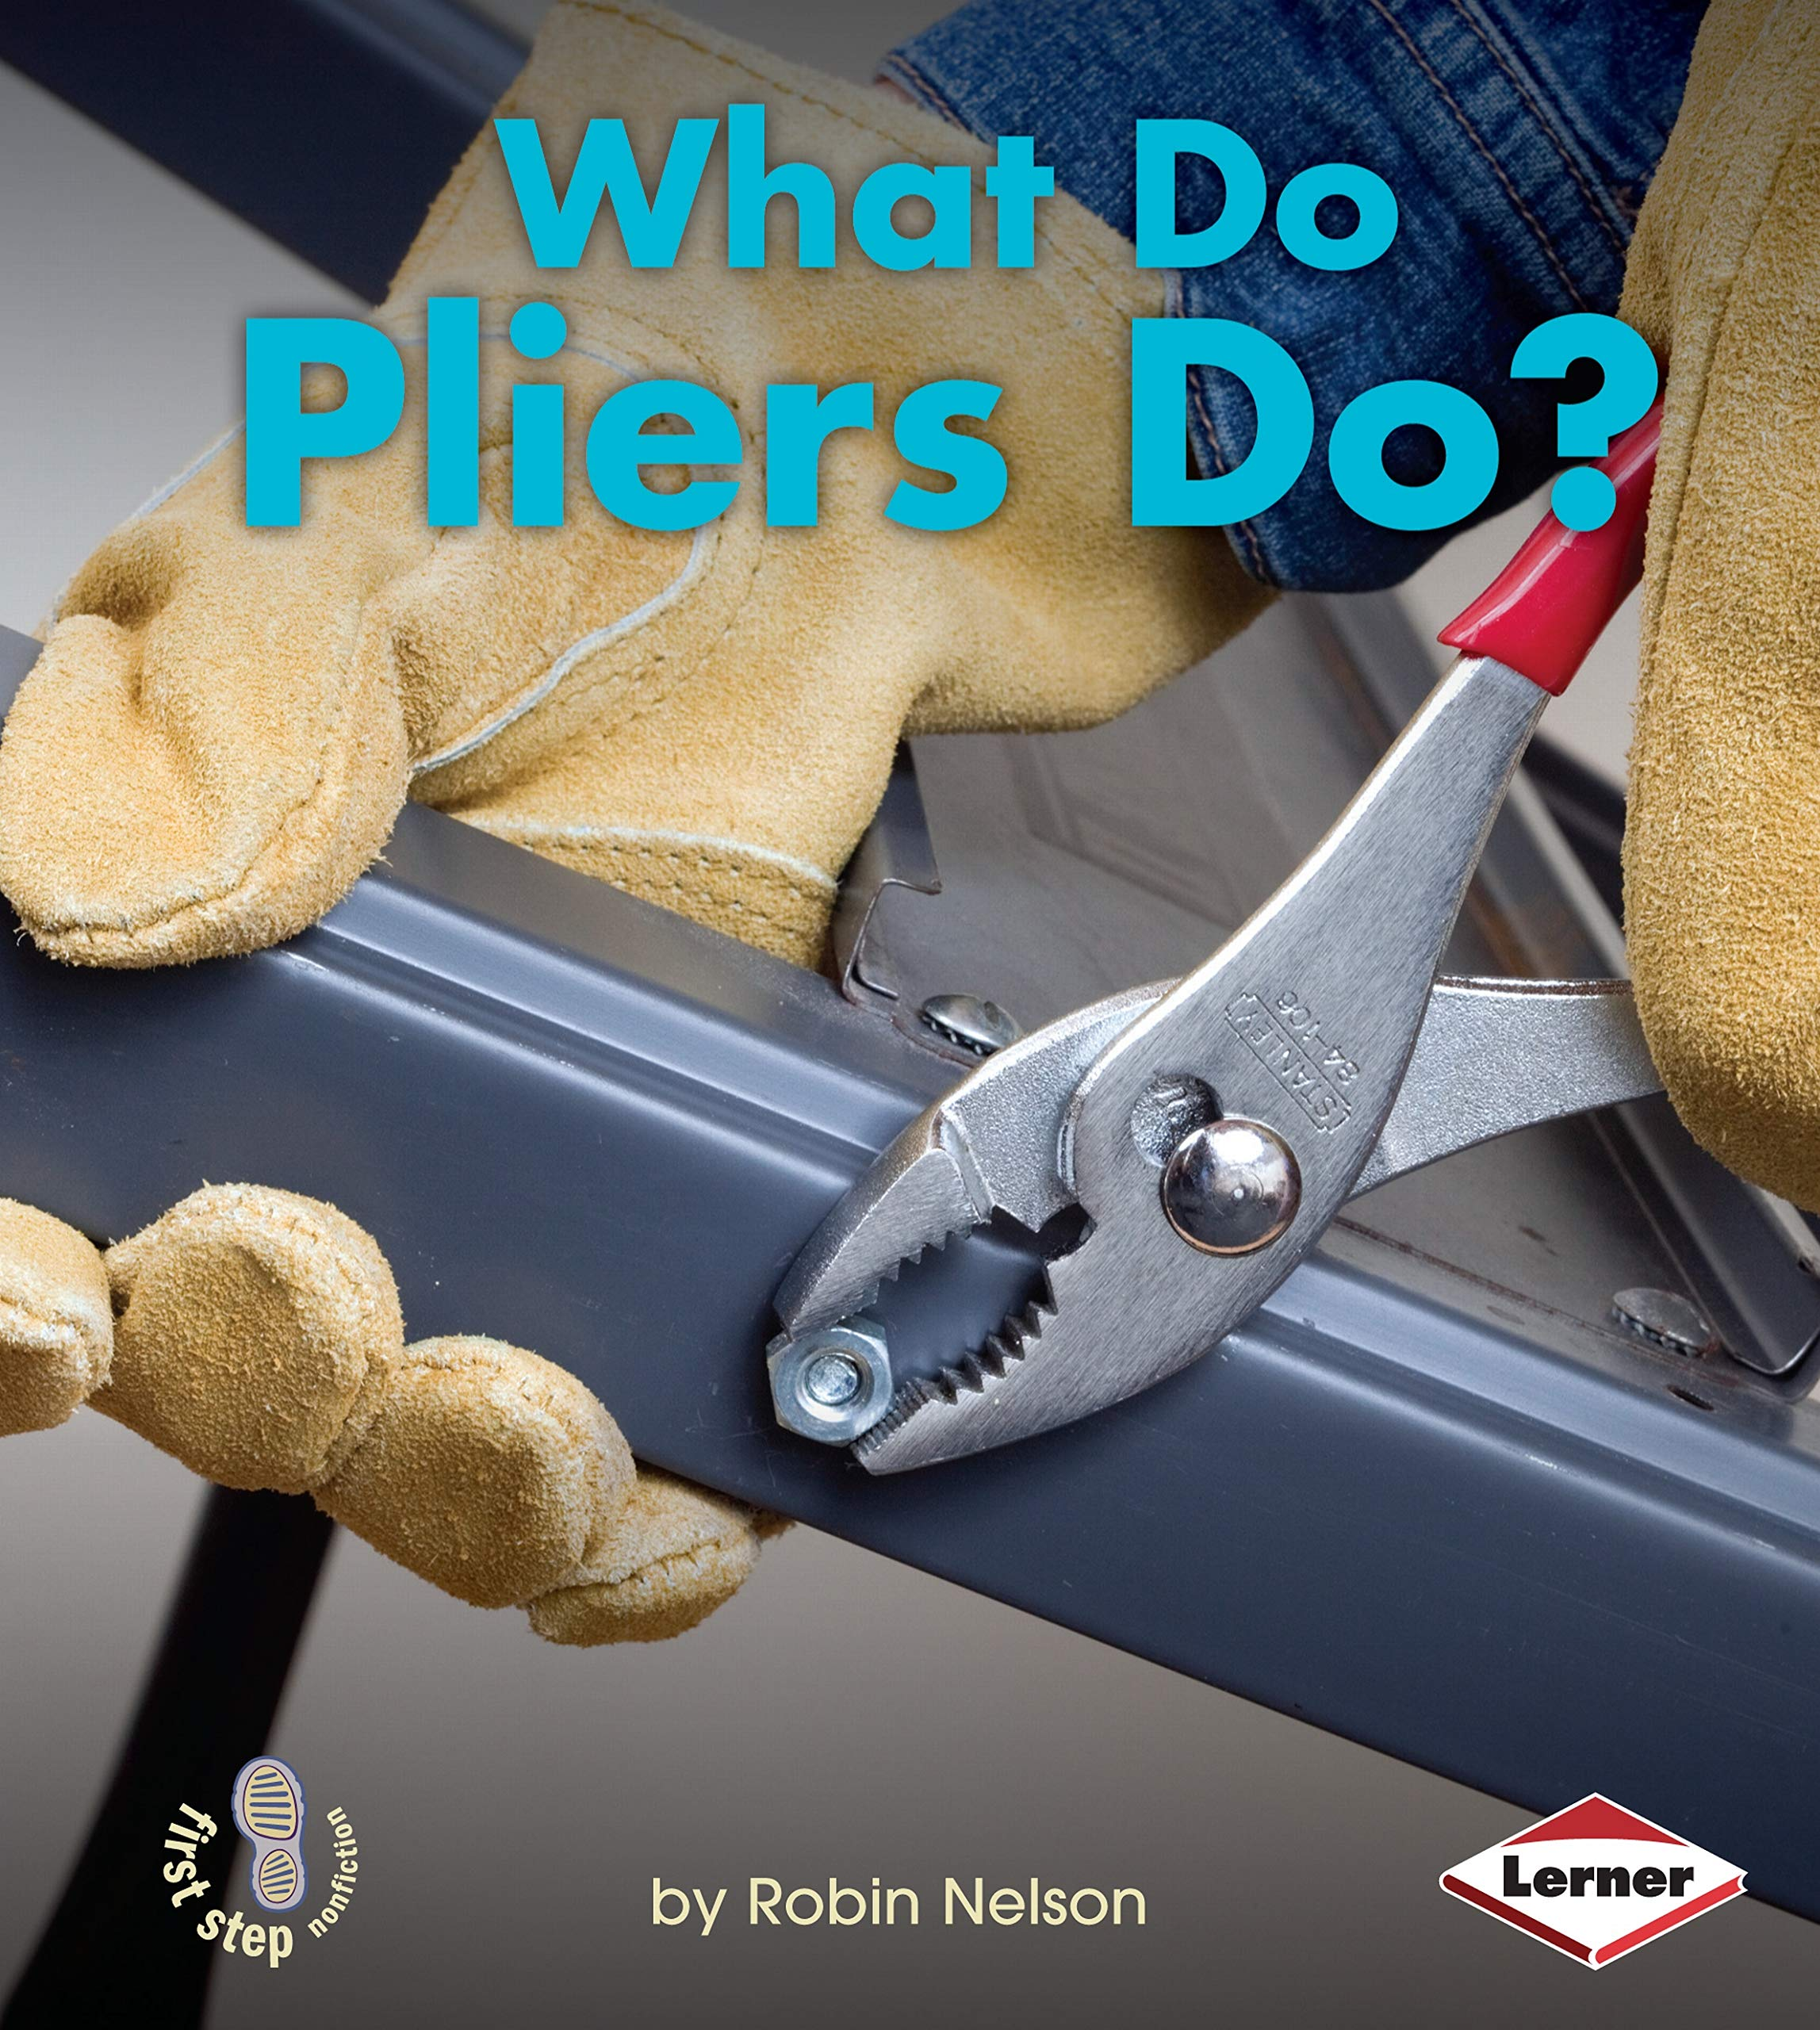 What Do Pliers Do? (First Step Nonfiction: Tools at Work) Library Binding – August 1, 2012 Robin Nelson Lerner Publications 0761389806 Pliers.